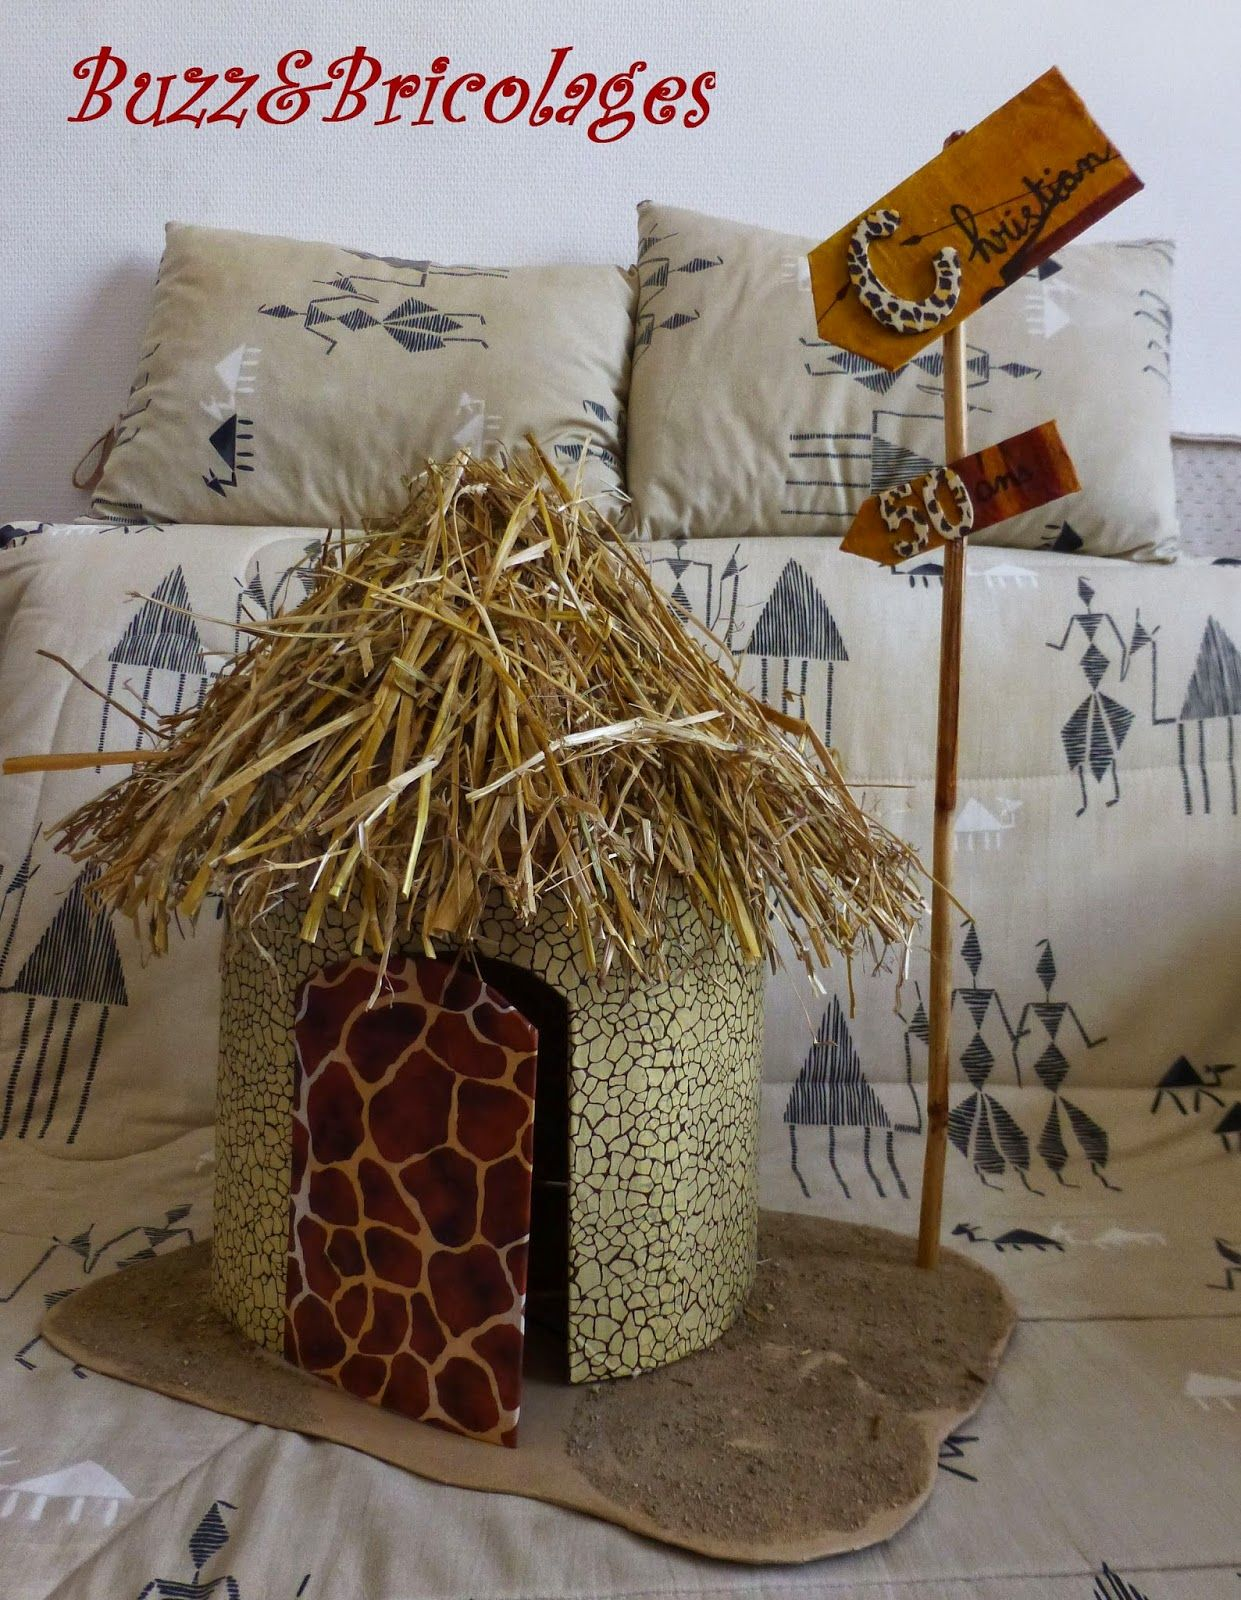 Site De Bricolage Maison Urne Case Africaine Buzz And Bricolages Africa Express